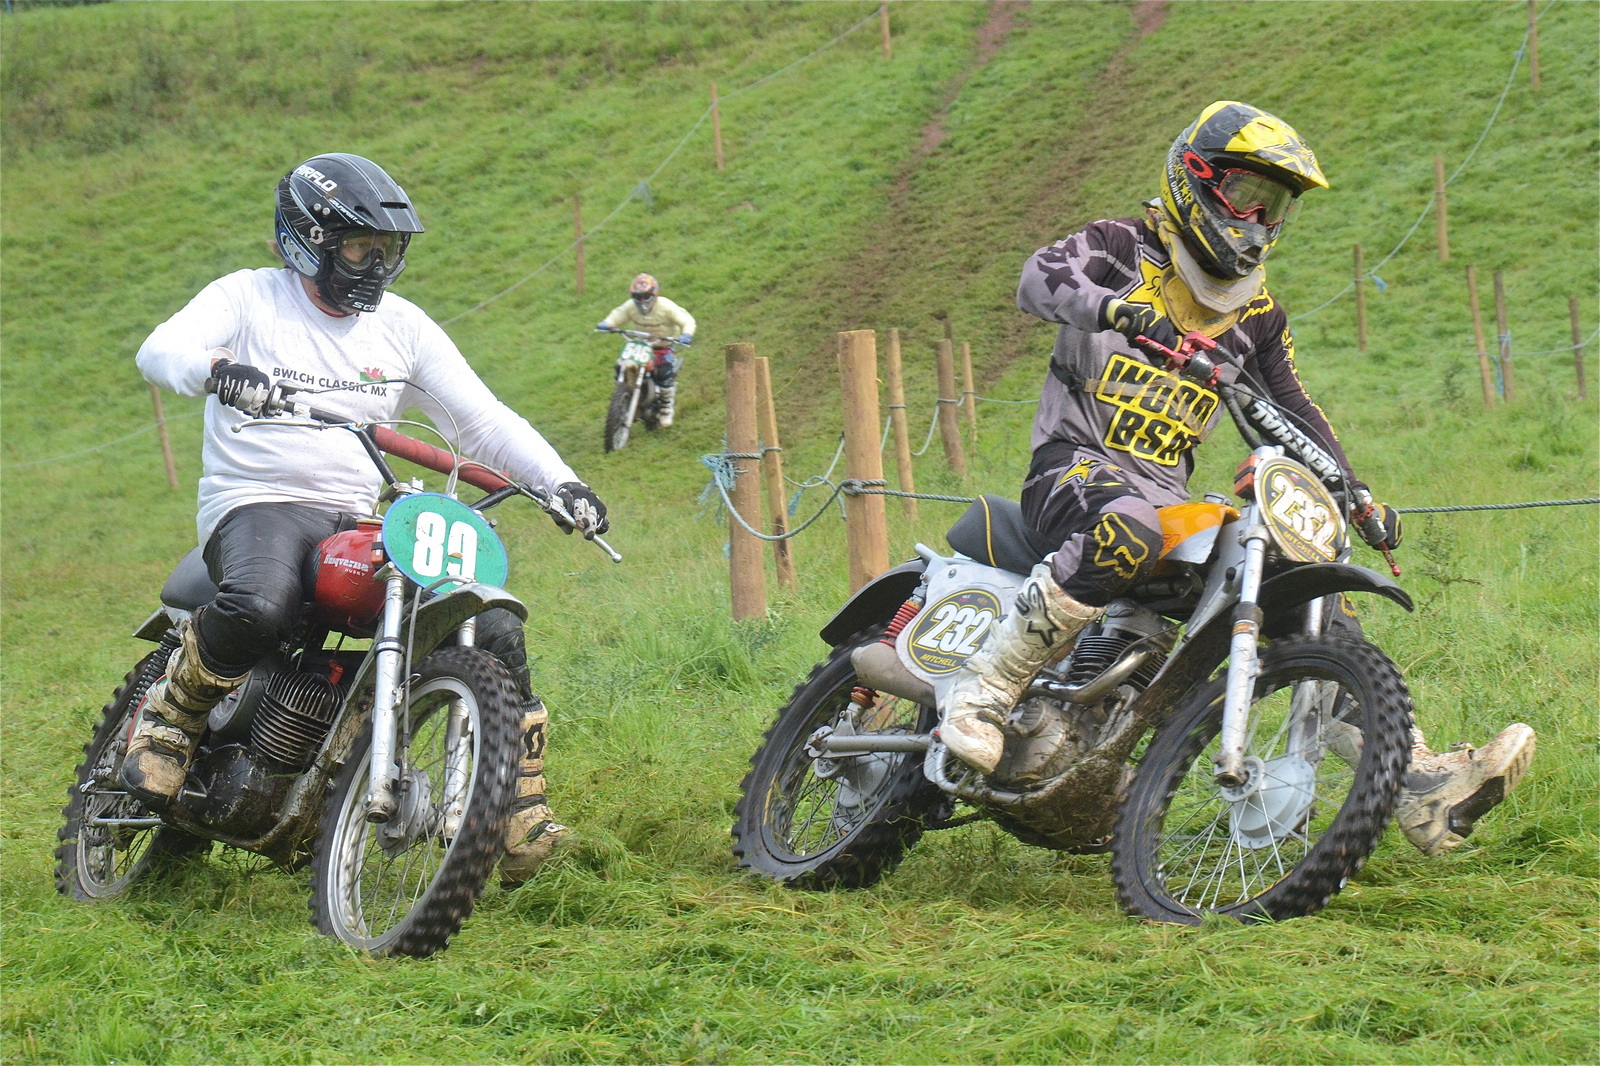 Llanthony Classic Scramble Photos September 2015 classicdirtbikerider.com..5